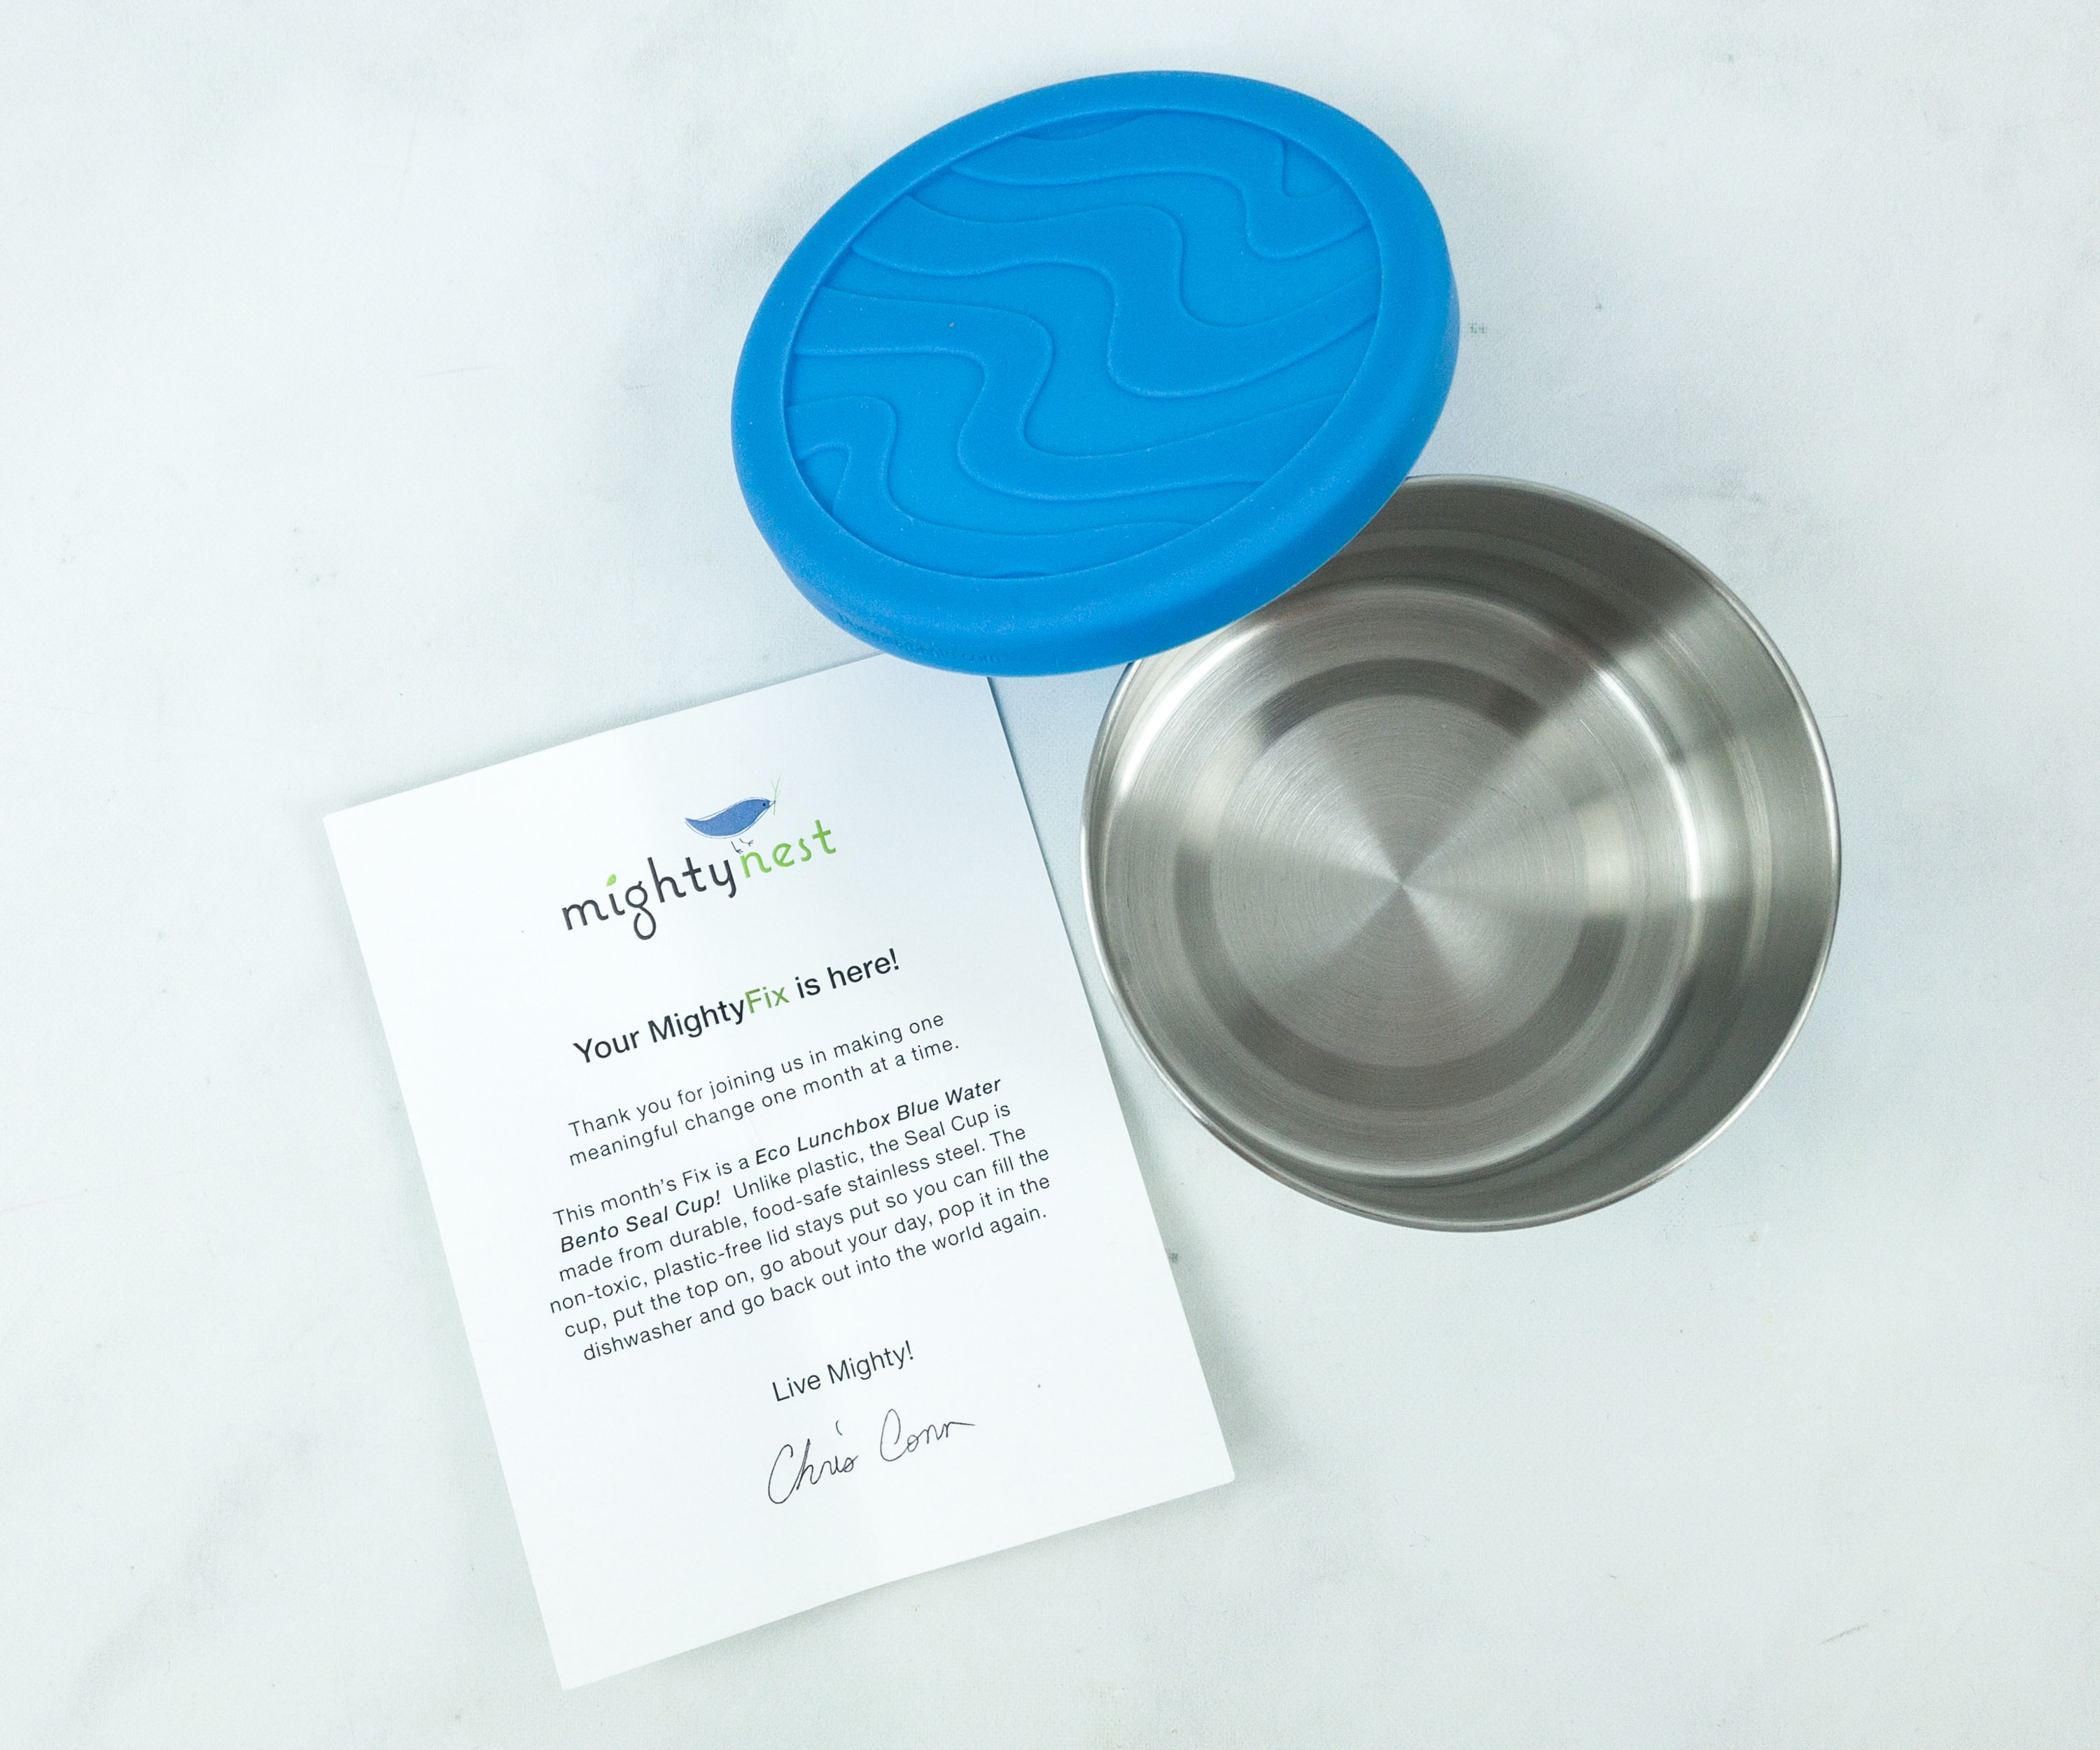 Mighty Fix February 2019 Subscription Box Review + First Month $1 Coupon!